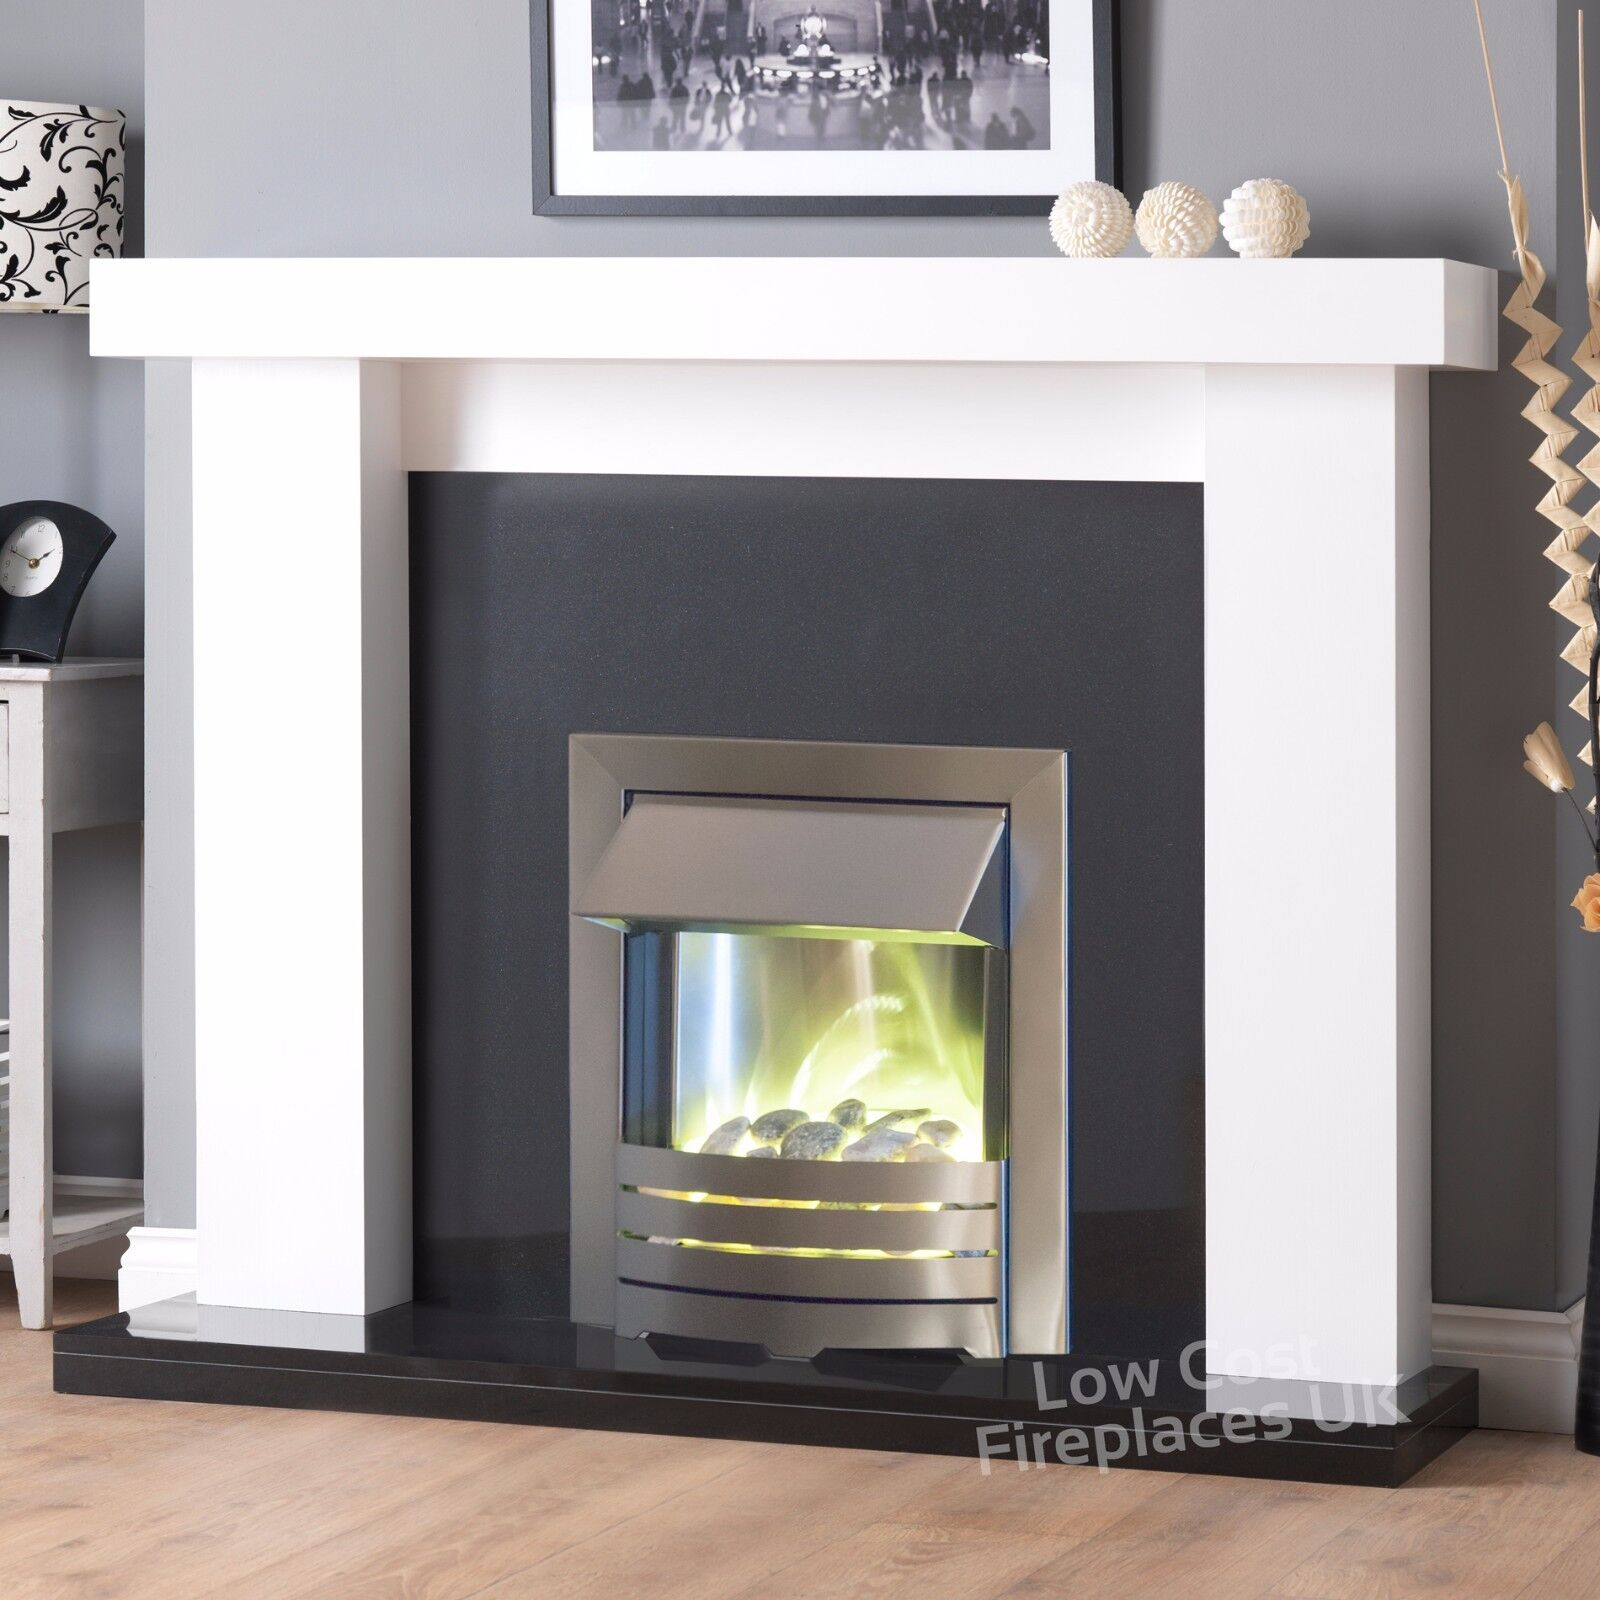 Electric White Surround Black Marble Wall Silver Fire Large Fireplace Suite 54 Ebay